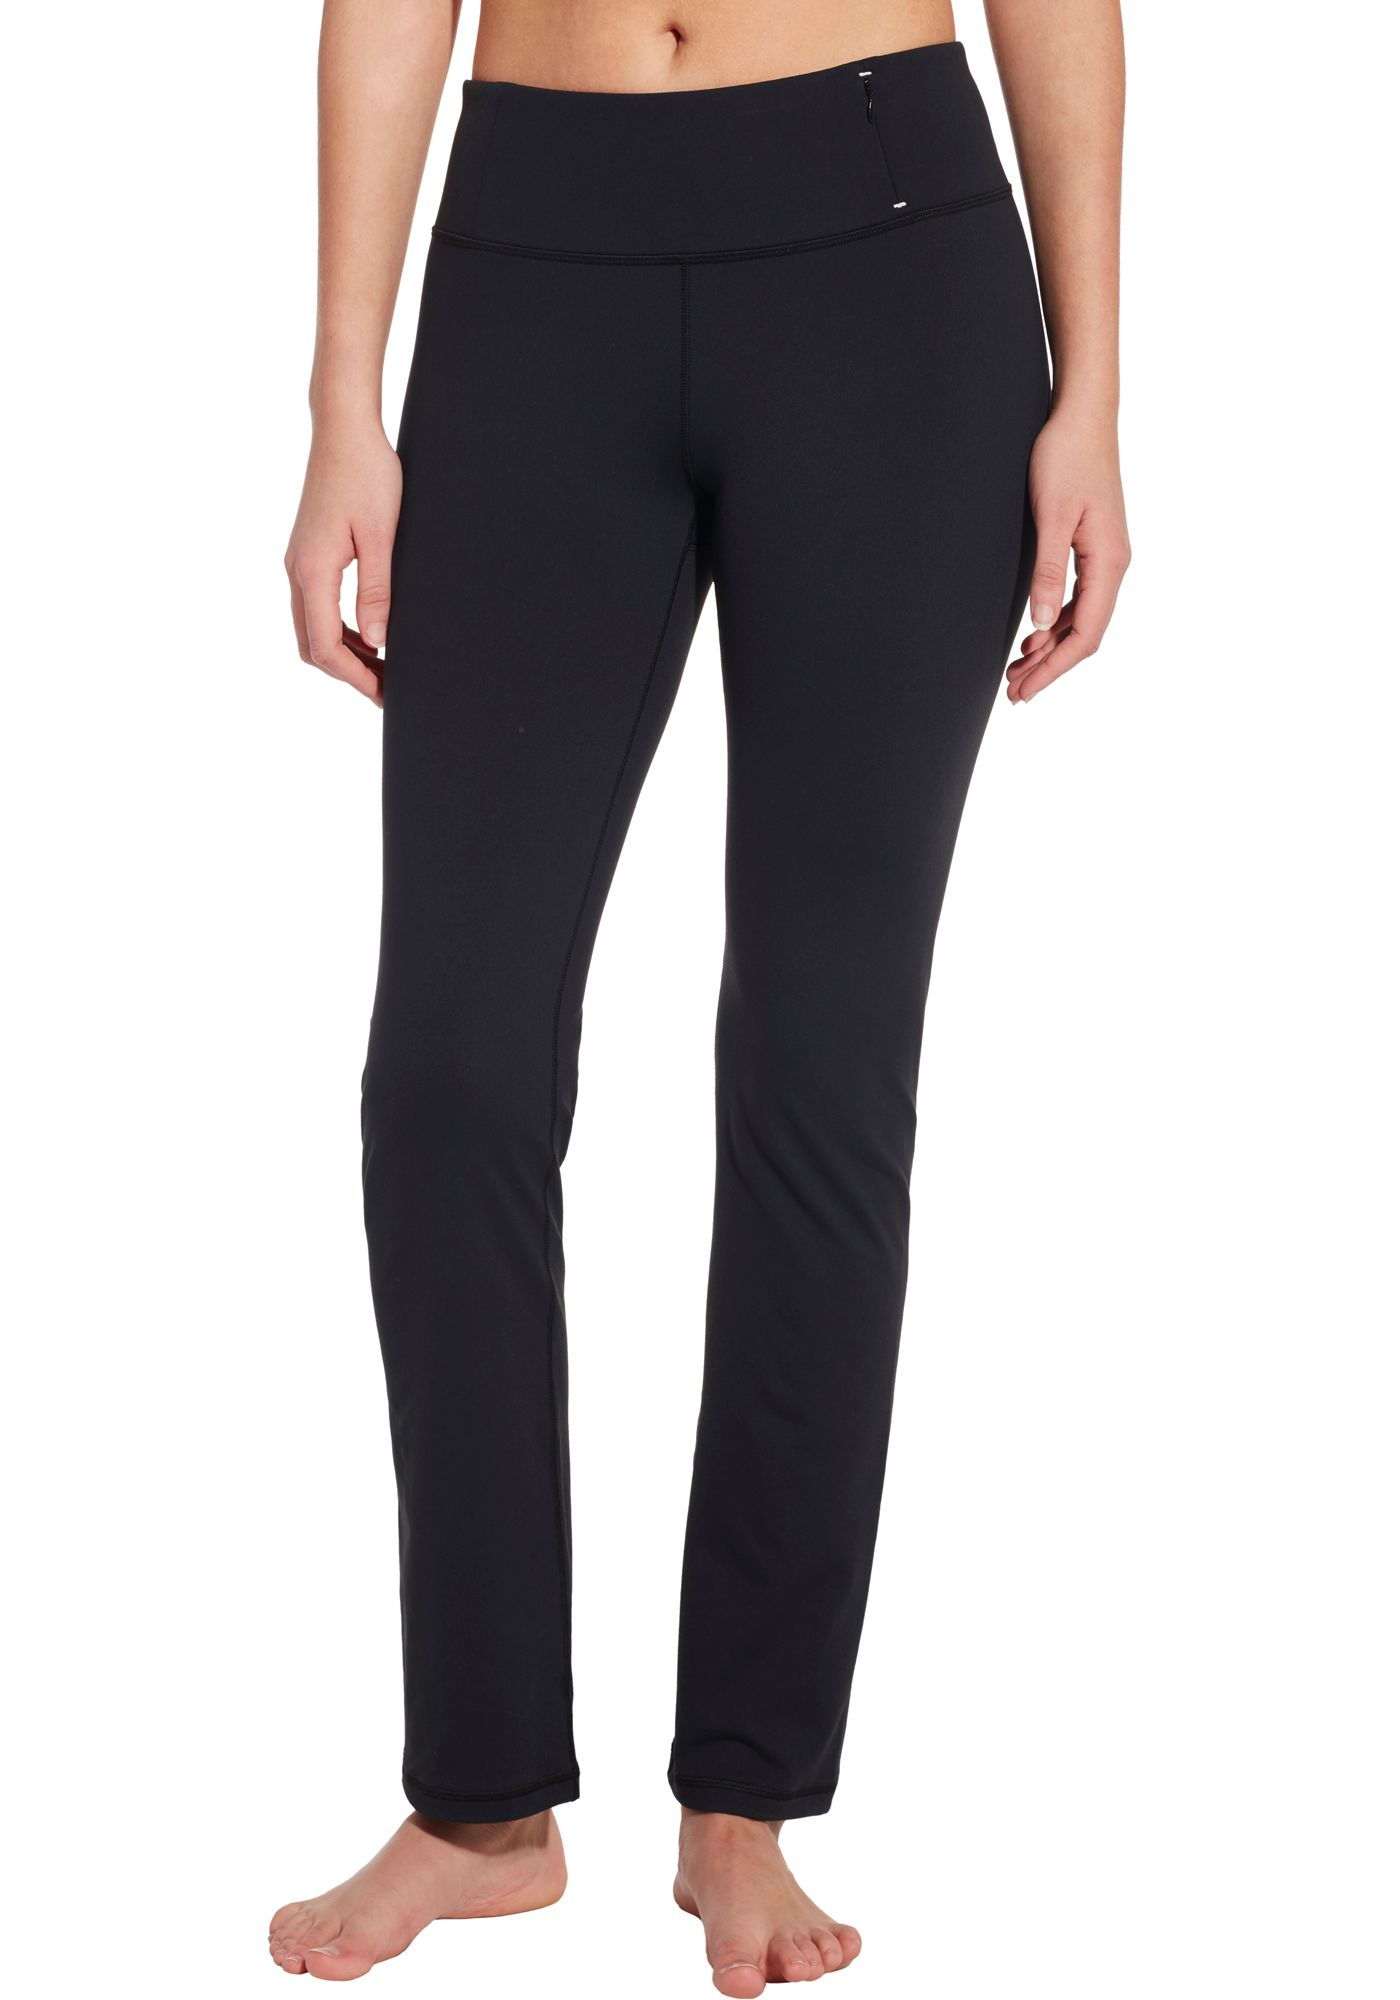 CALIA by Carrie Underwood Women's Essential Pants